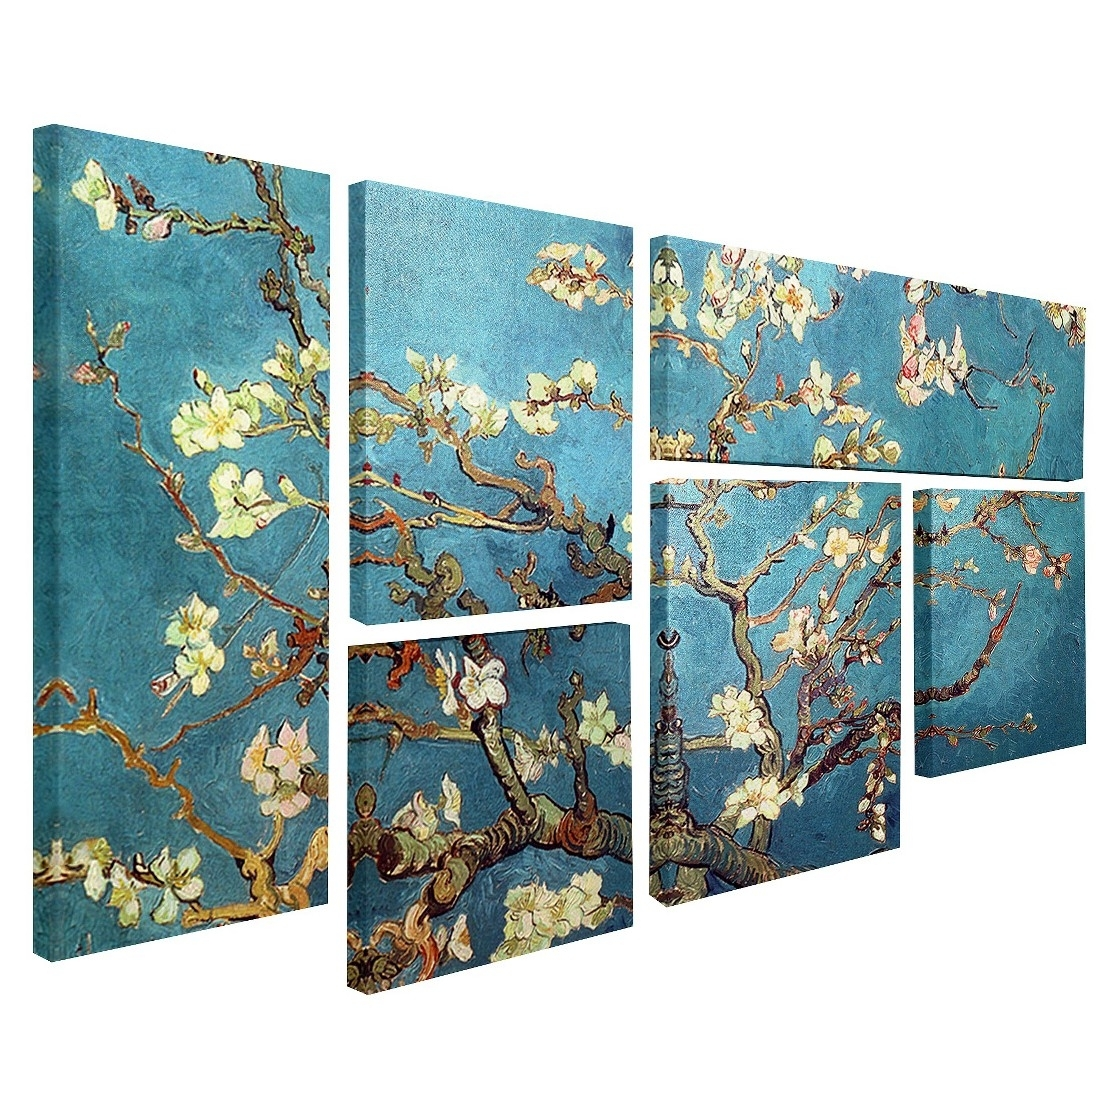 Vincent Van Gogh Multi Piece Wall Art – 'almond Blossoms', | Van Regarding 2017 Almond Blossoms Vincent Van Gogh Wall Art (View 16 of 20)